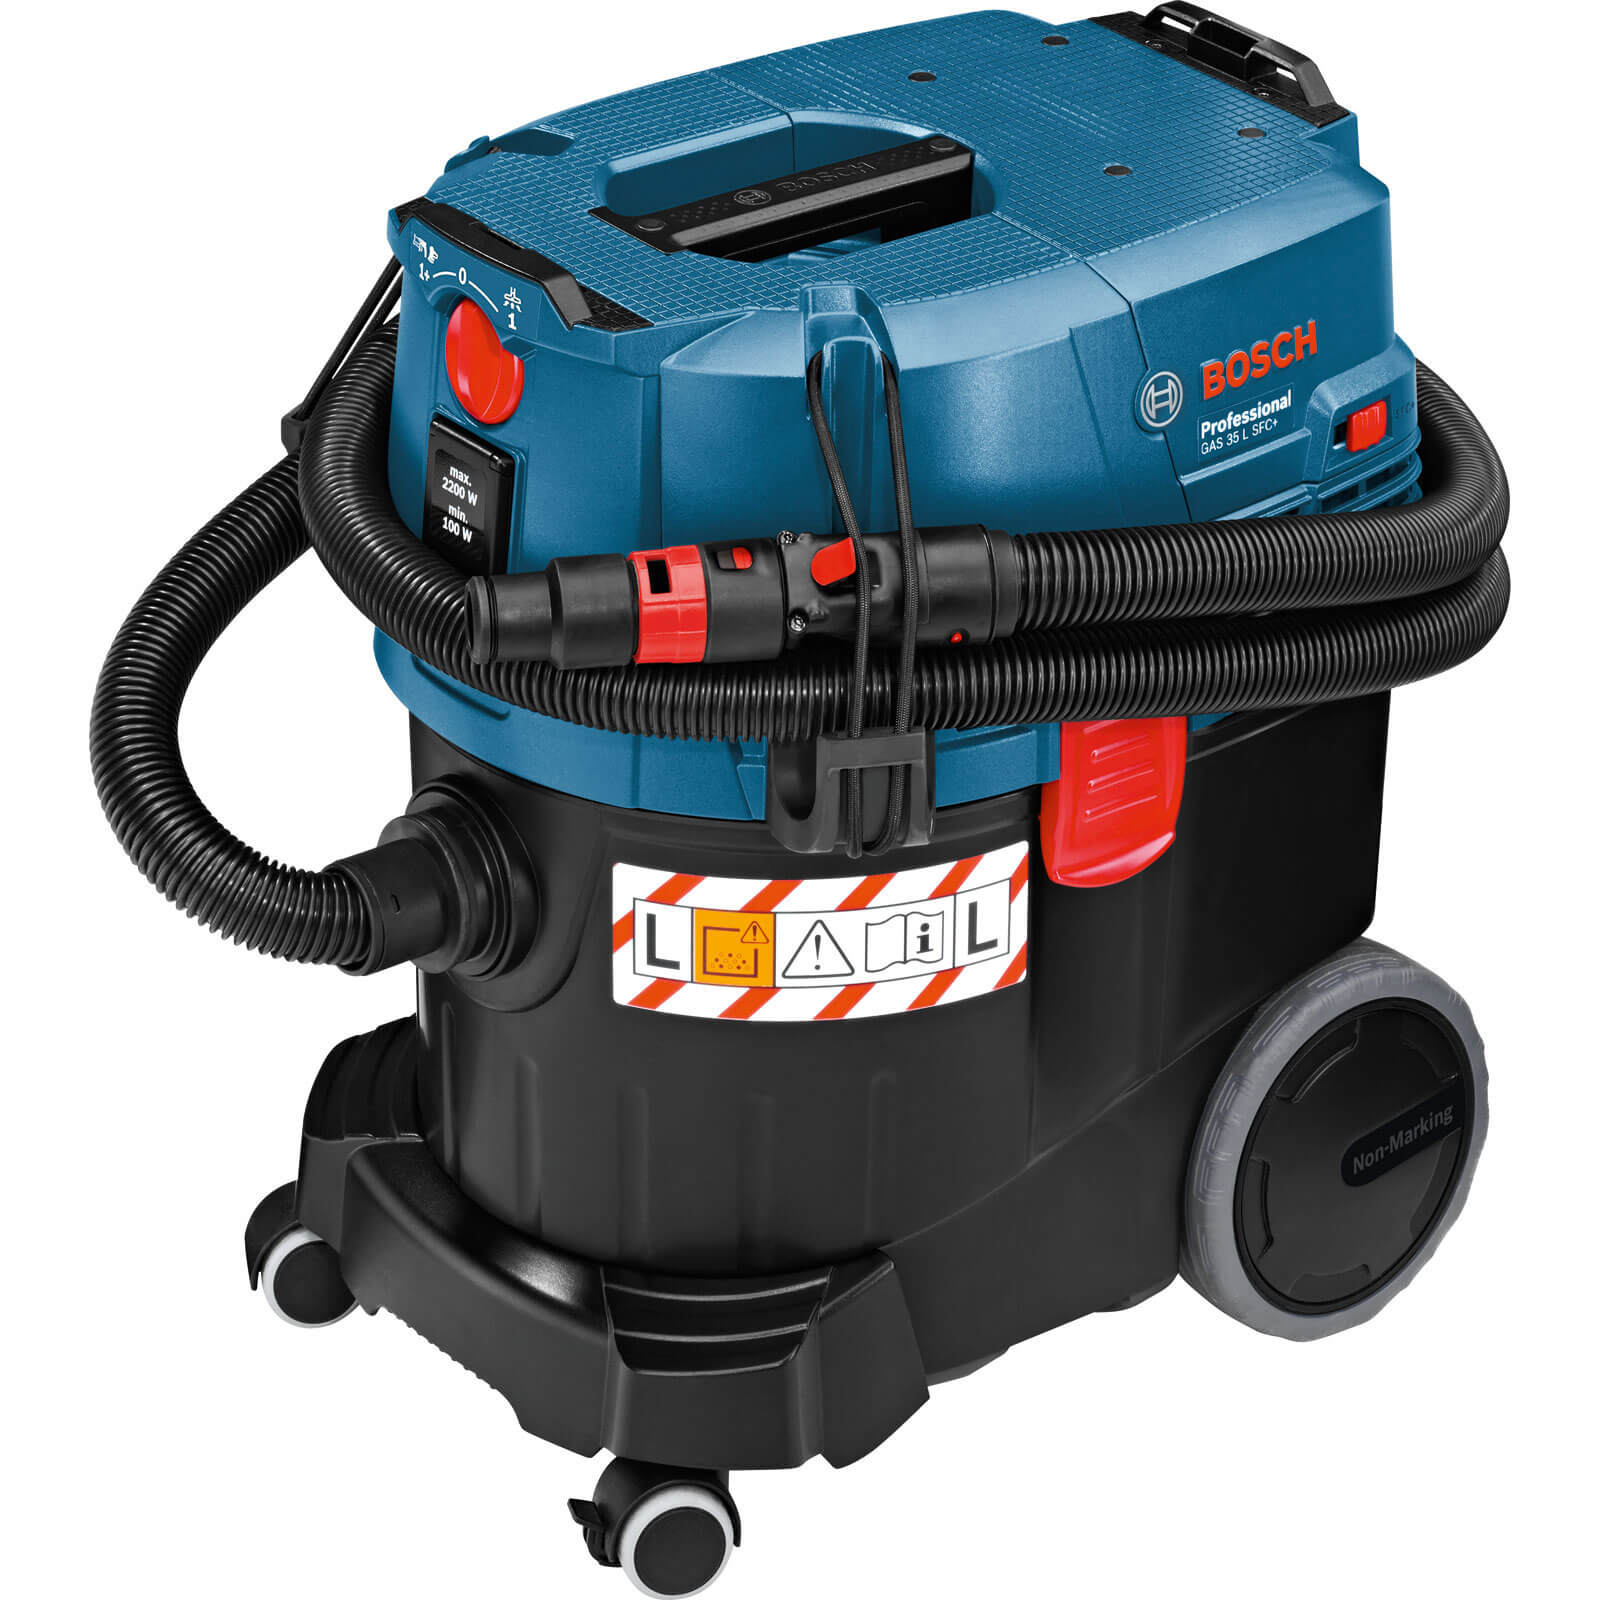 Image of Bosch GAS 35 L SFC+ Wet and Dry Dust Extractor 240v